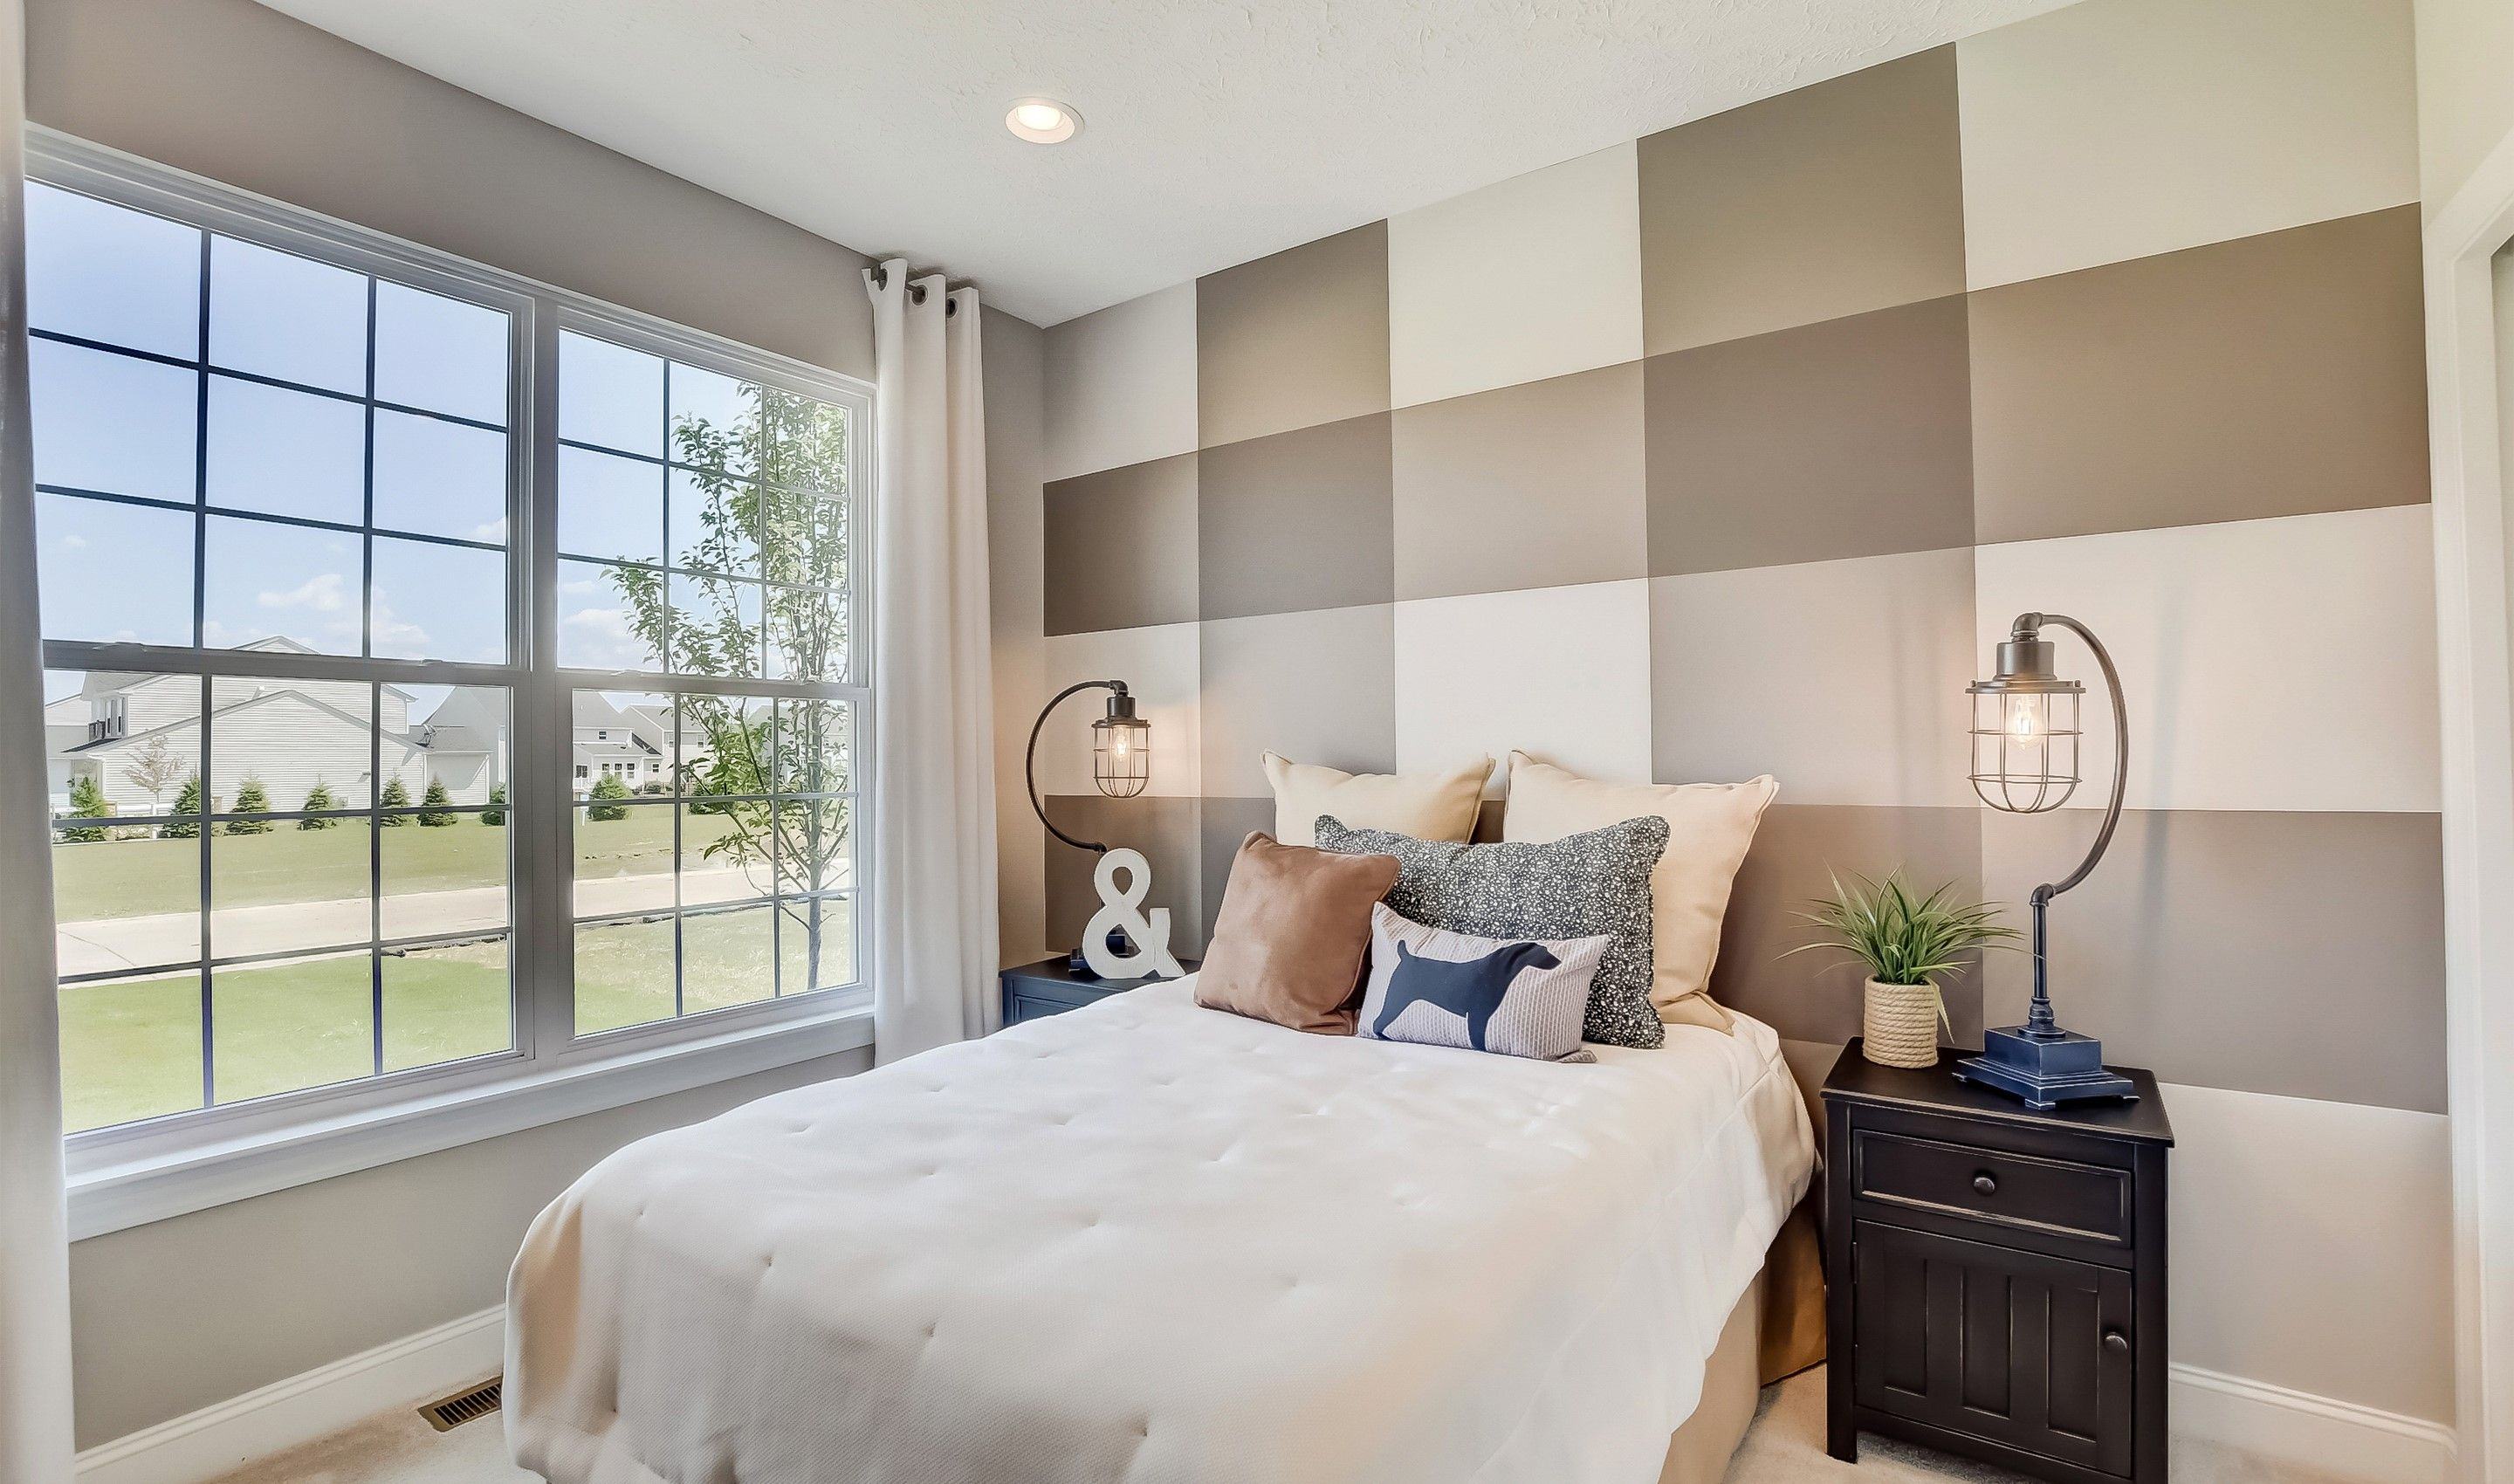 Bedroom featured in the Bedford By K. Hovnanian's® Four Seasons in Cleveland, OH